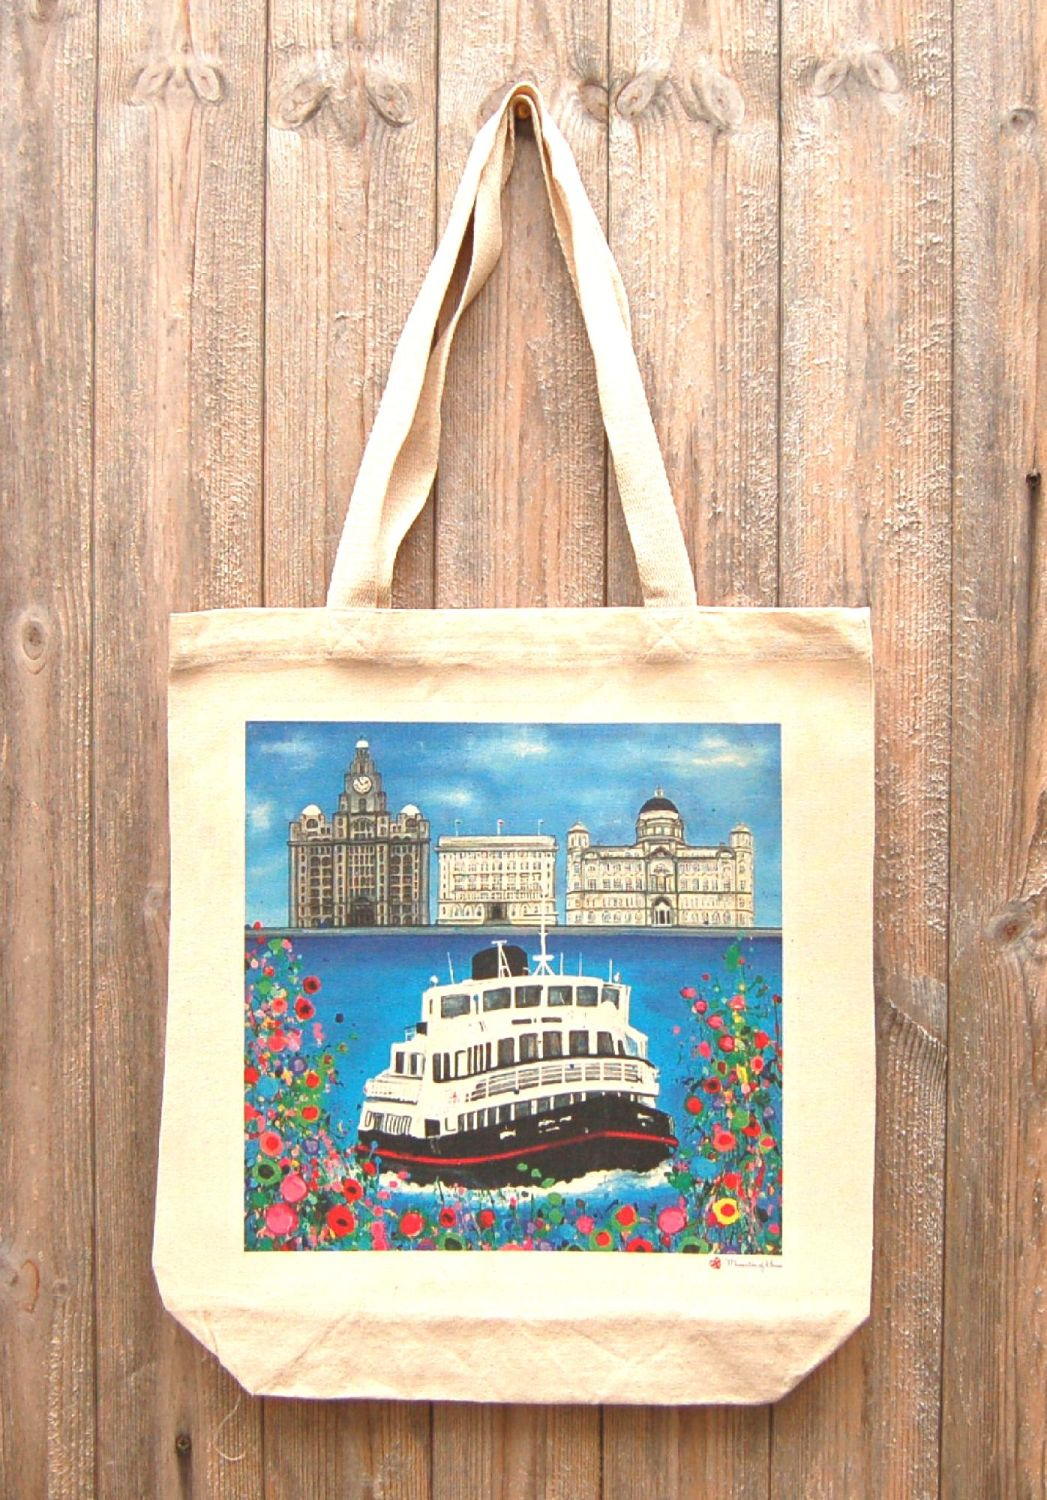 Jo Gough - Liverpool 3 Graces with flowers Tote Bag